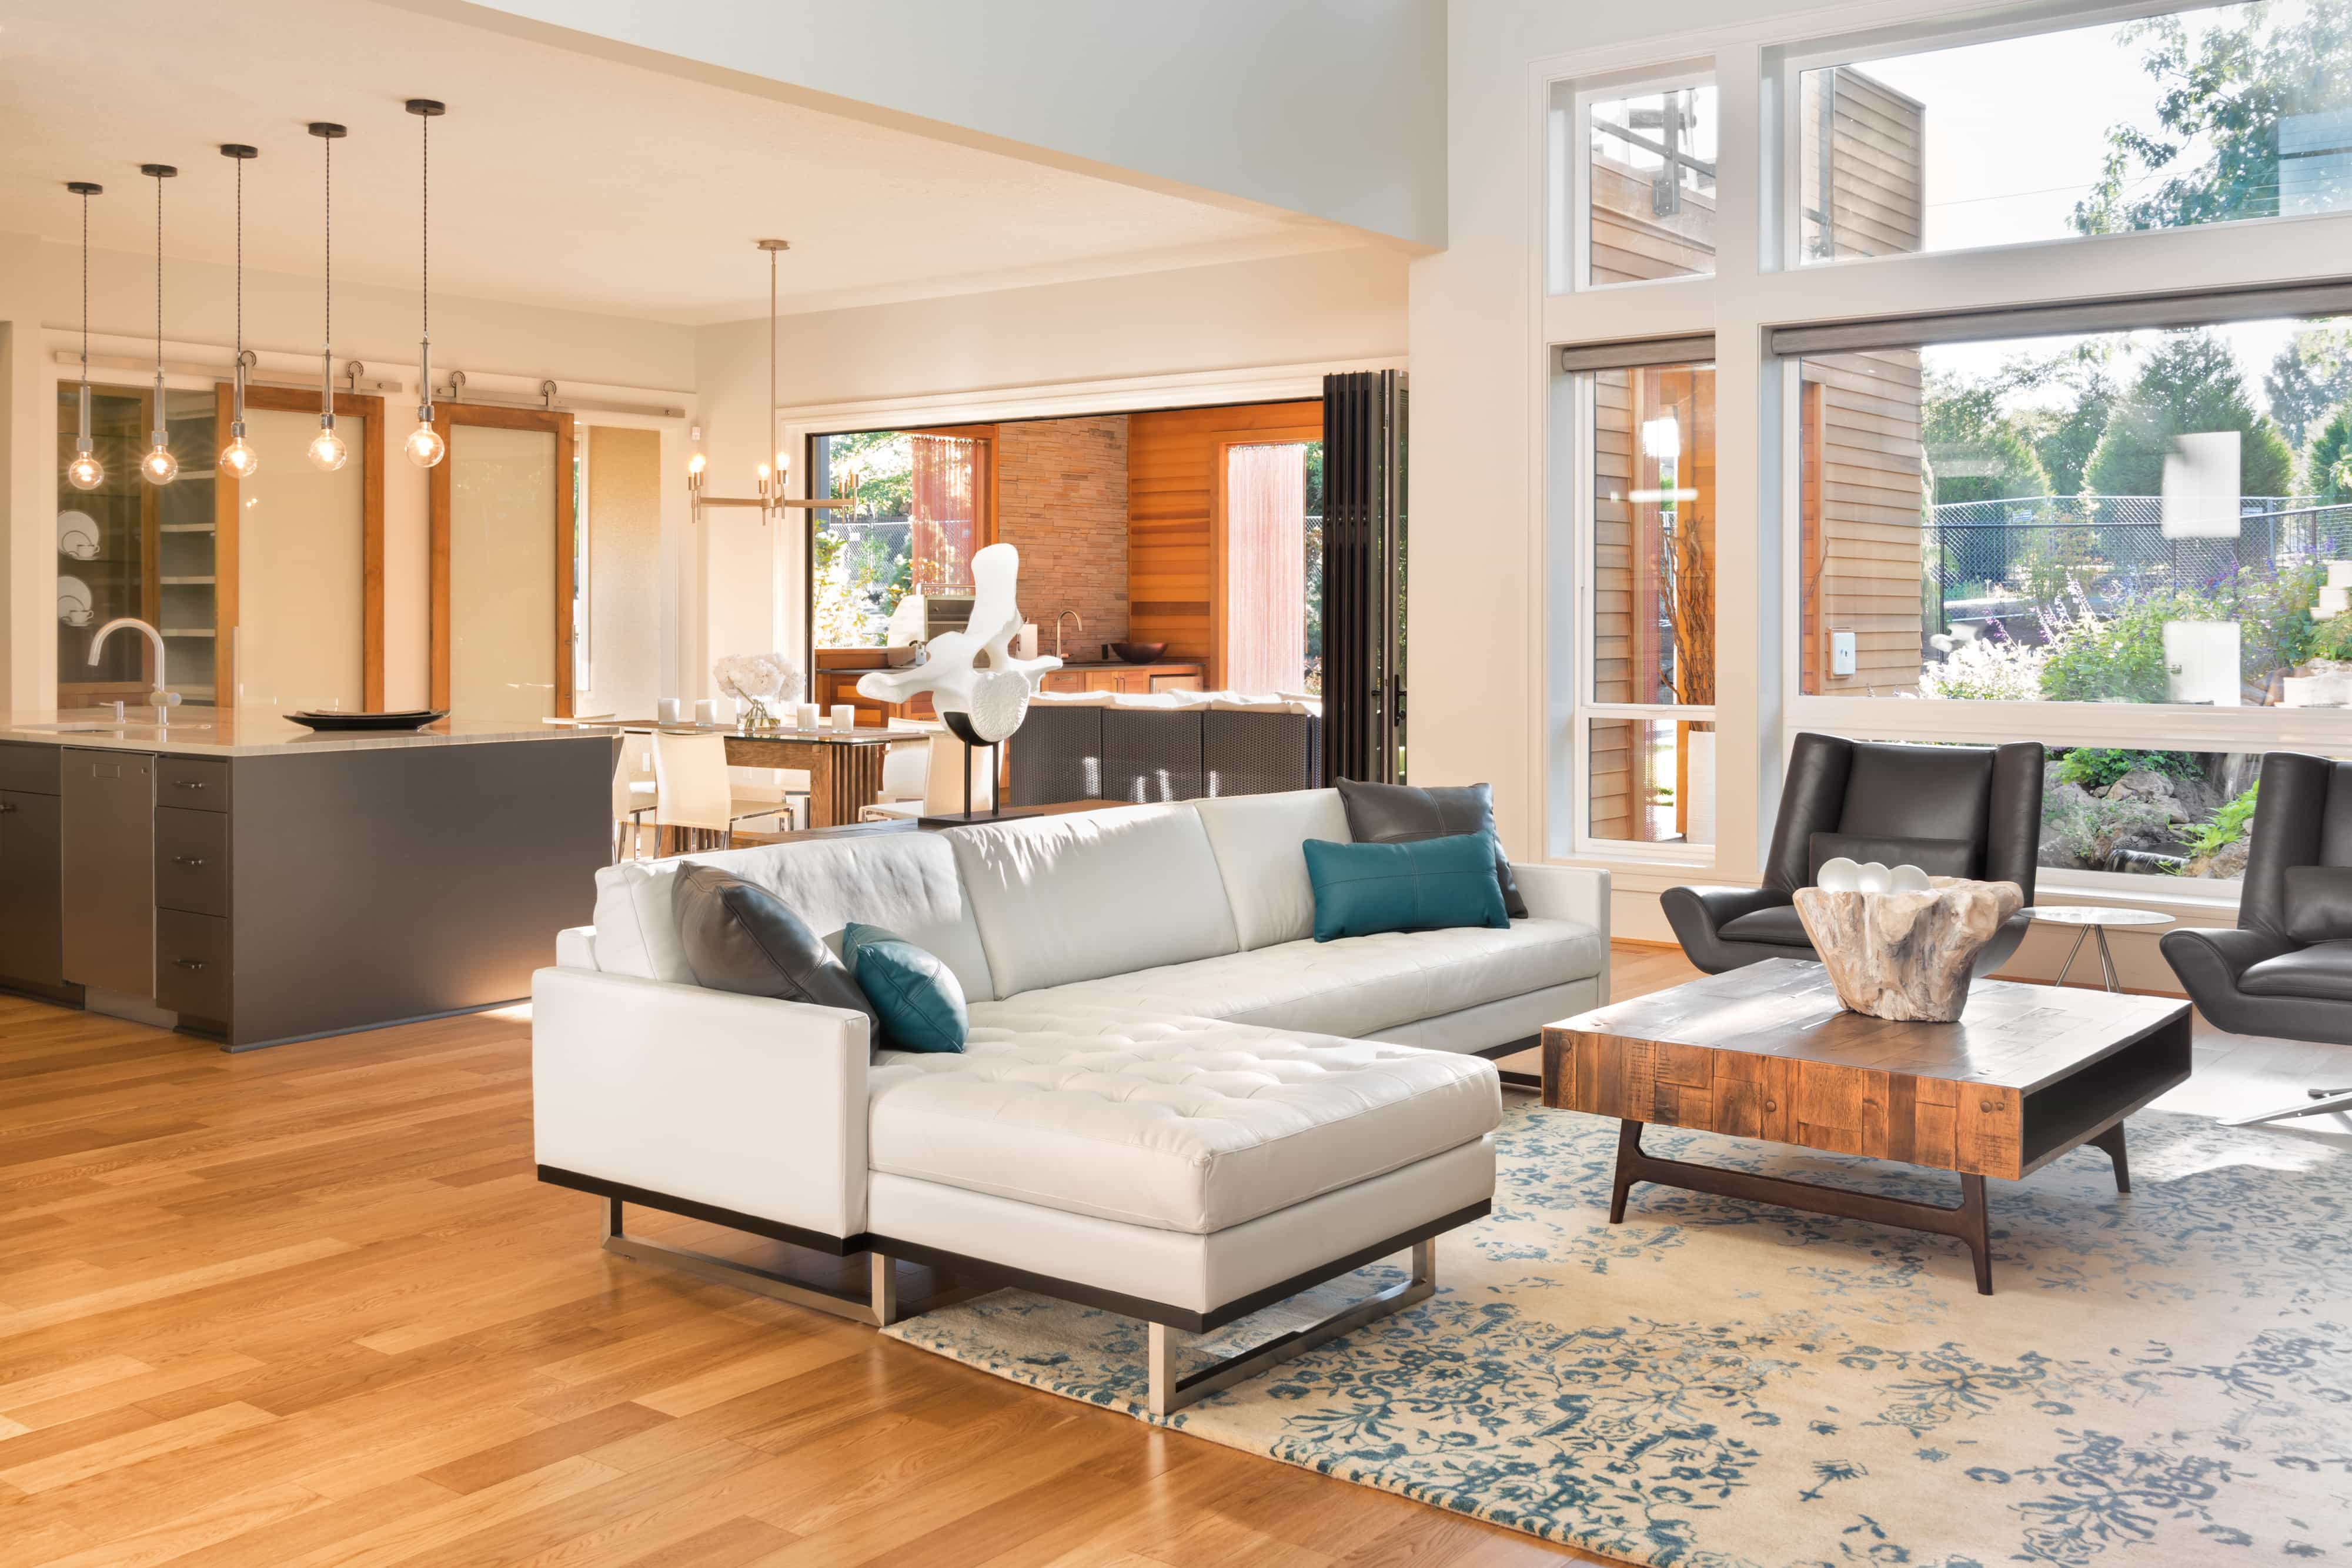 armstone - Choosing a Floor for Your Open-plan Area